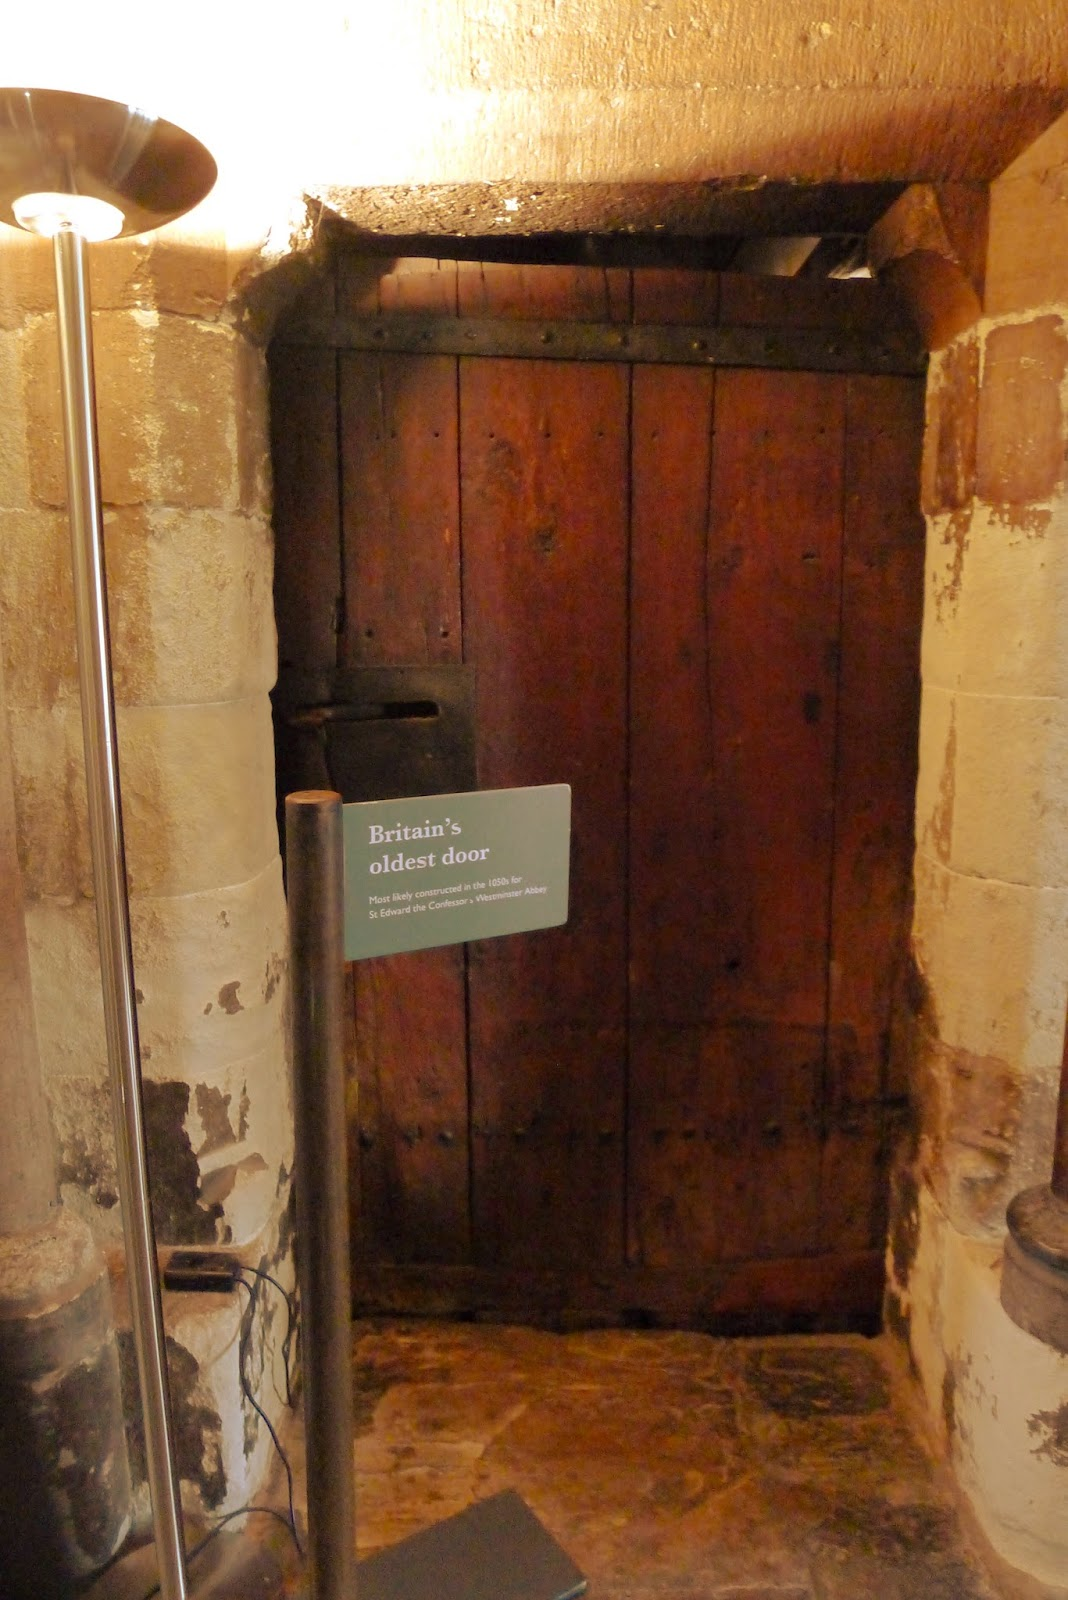 Britain's Oldest Door